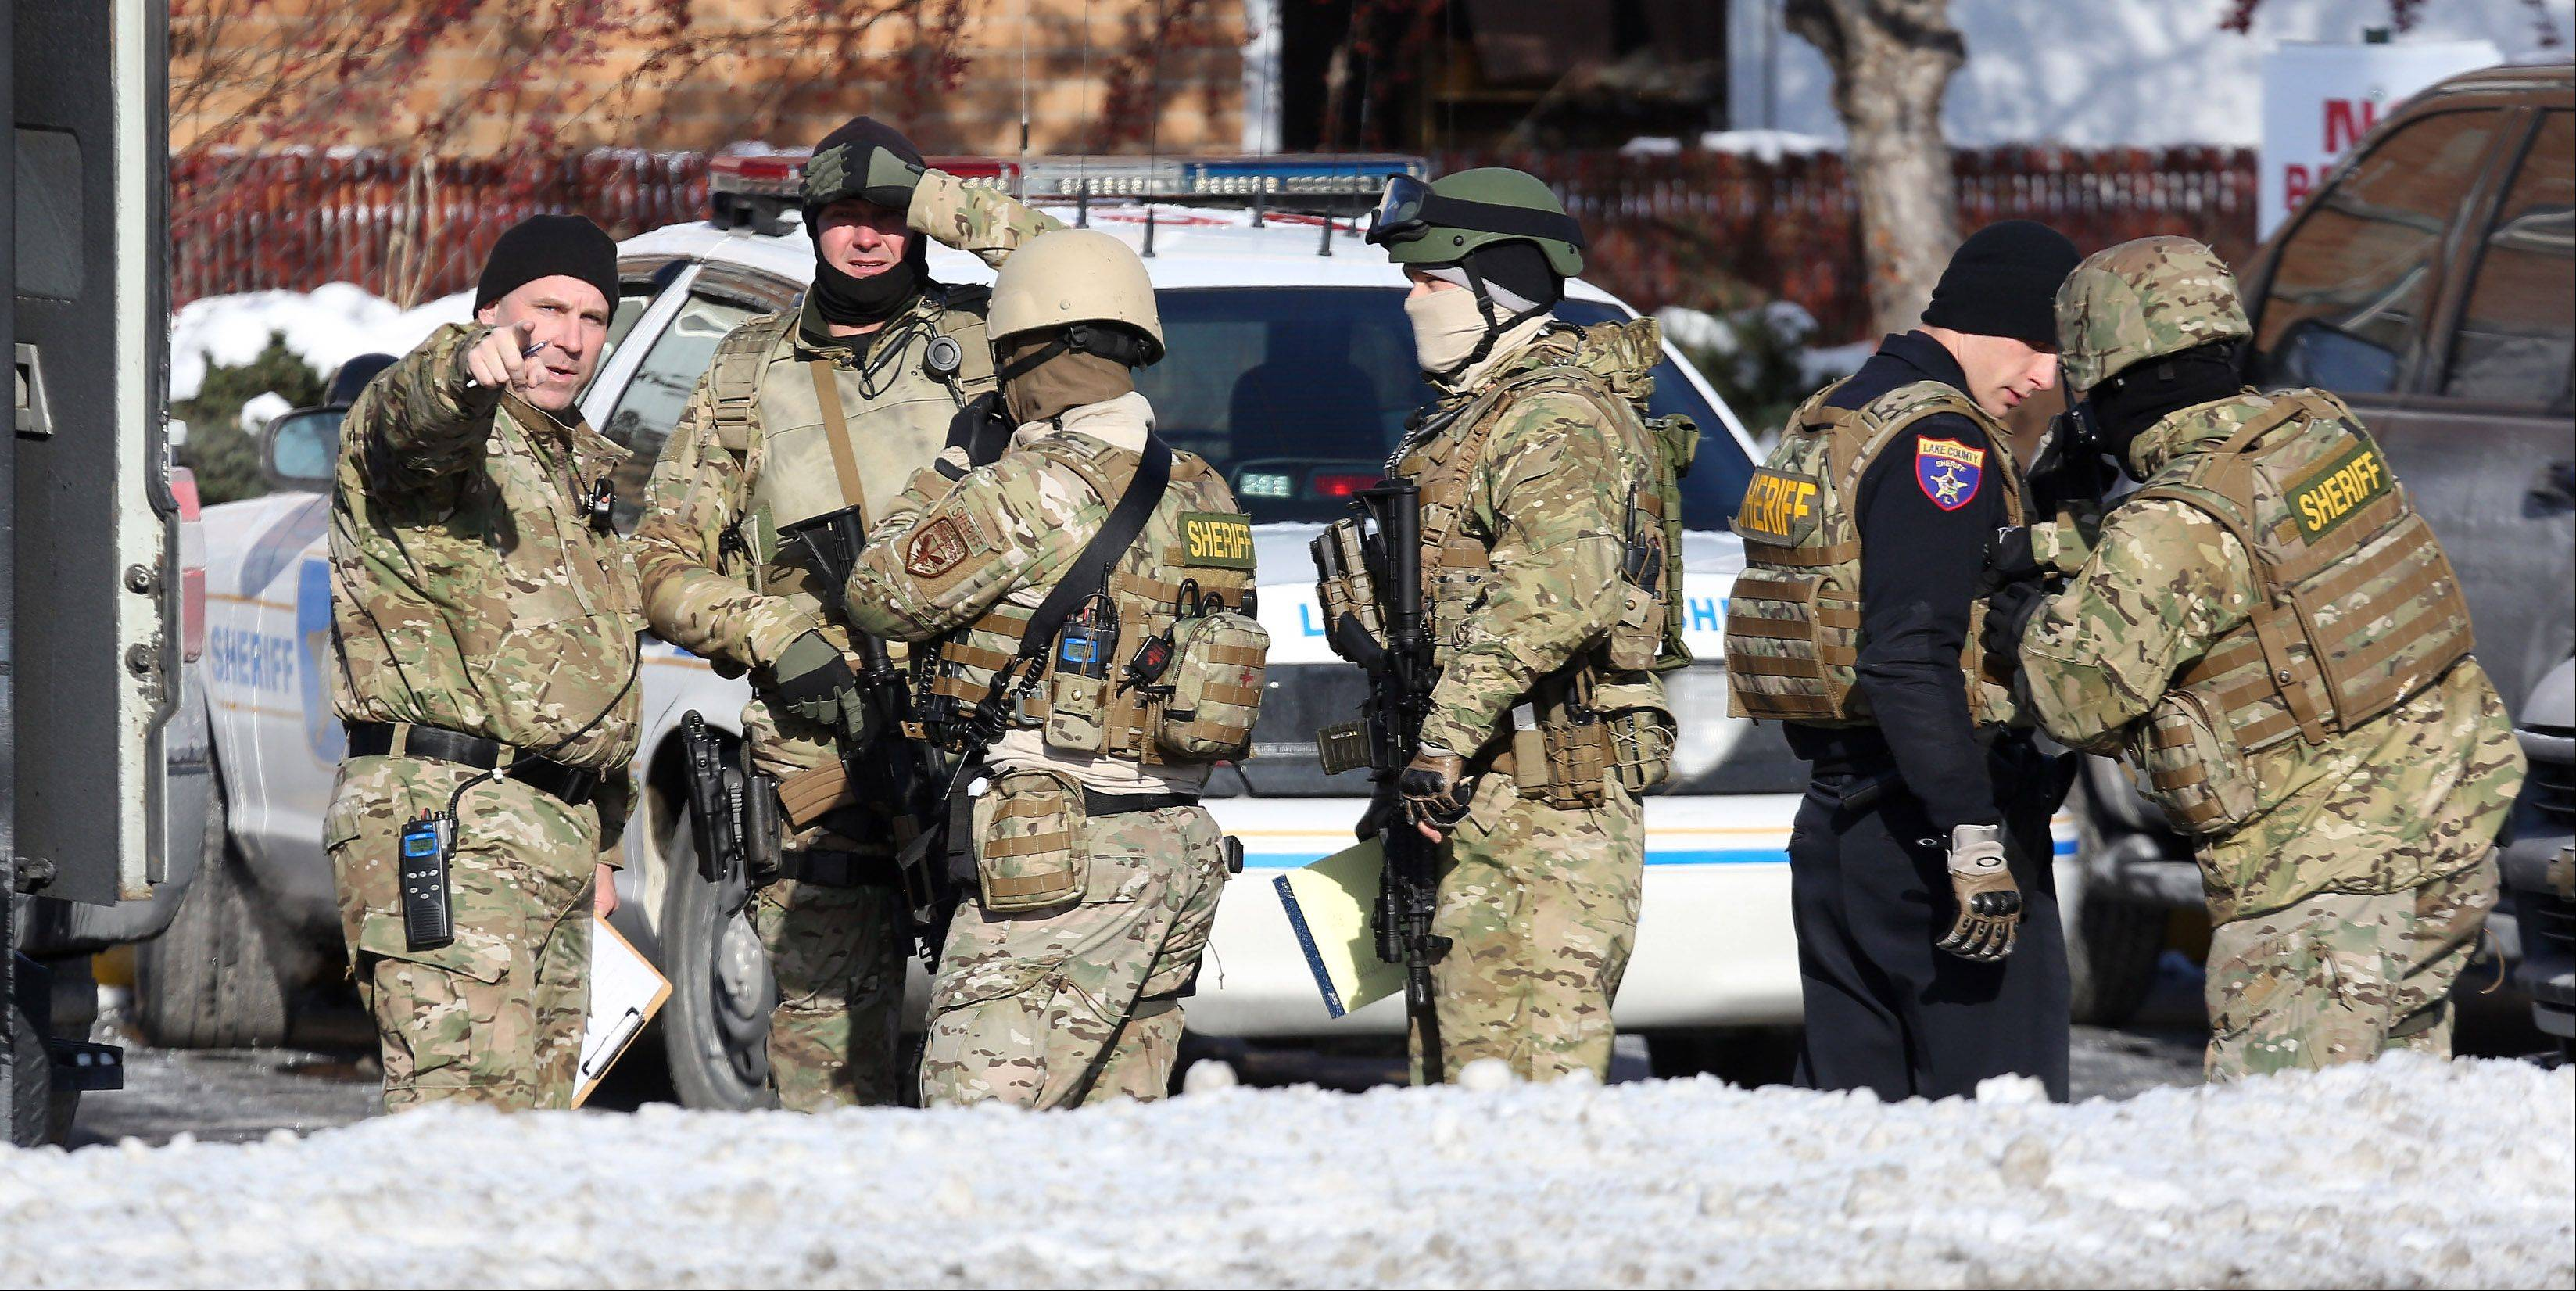 The Lake County incident response team members gear up Tuesday as they responded to a report of a man with a rifle barricaded in a house in Lake Villa. Local schools were in lockdown in response to the situation.